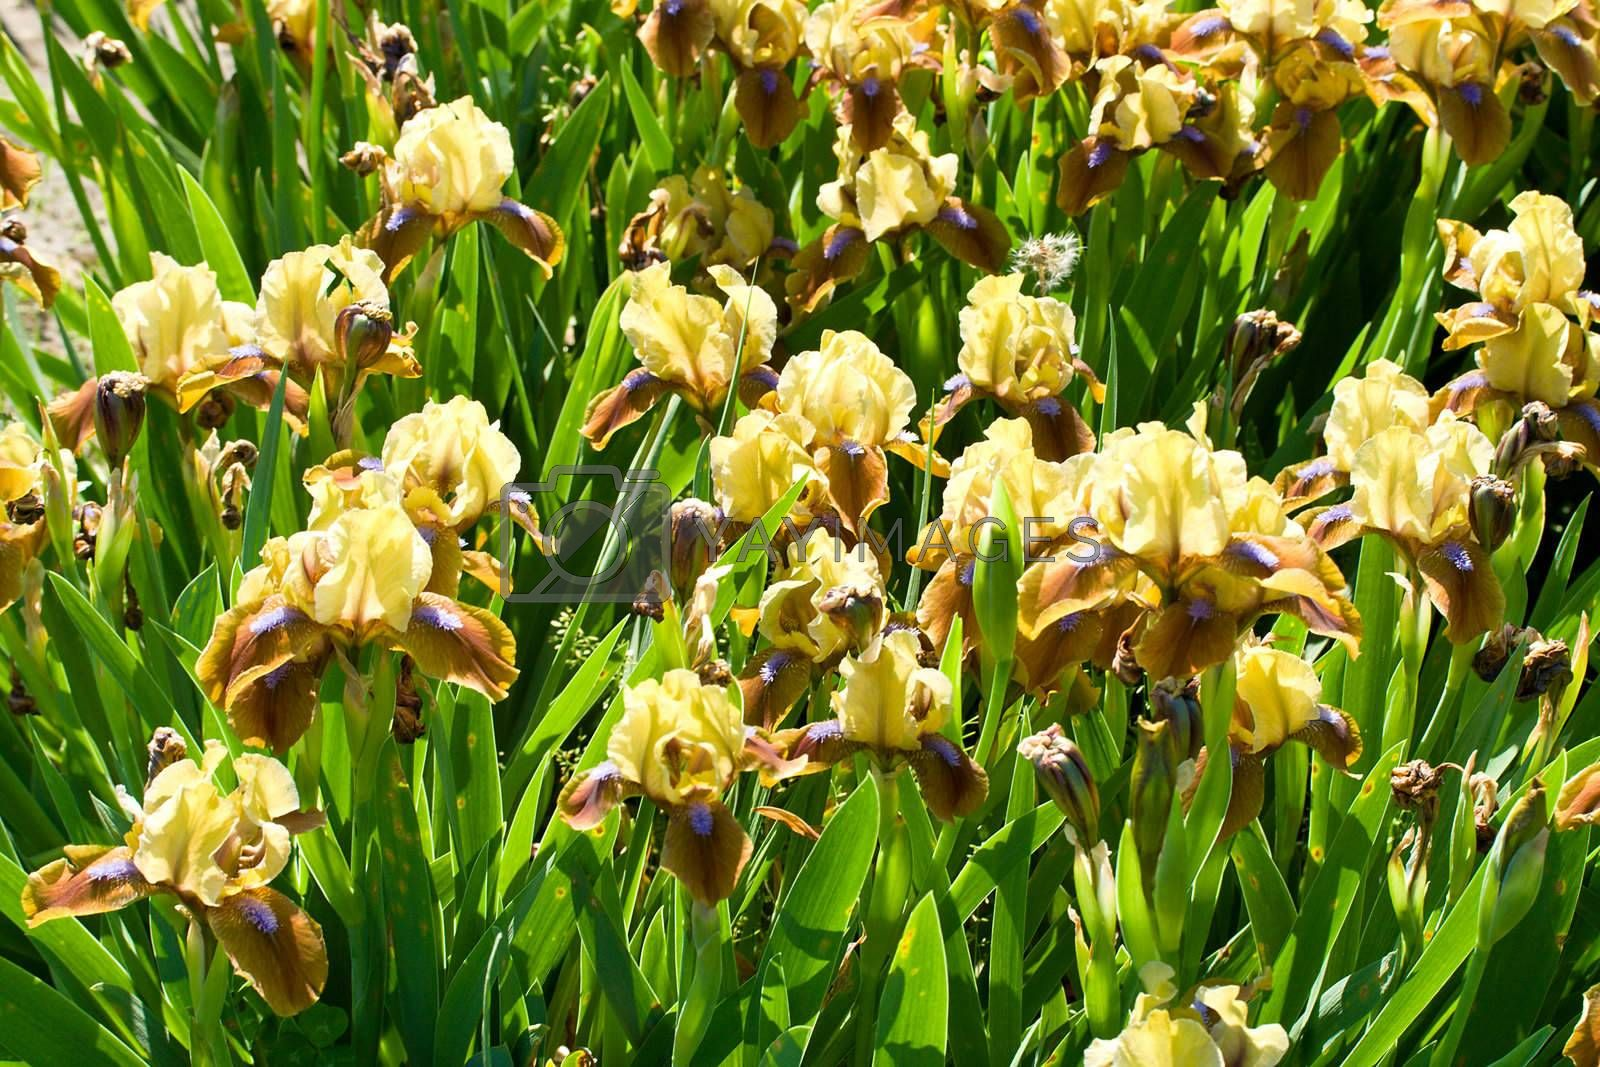 close-up yellow-brown-purple irises on field